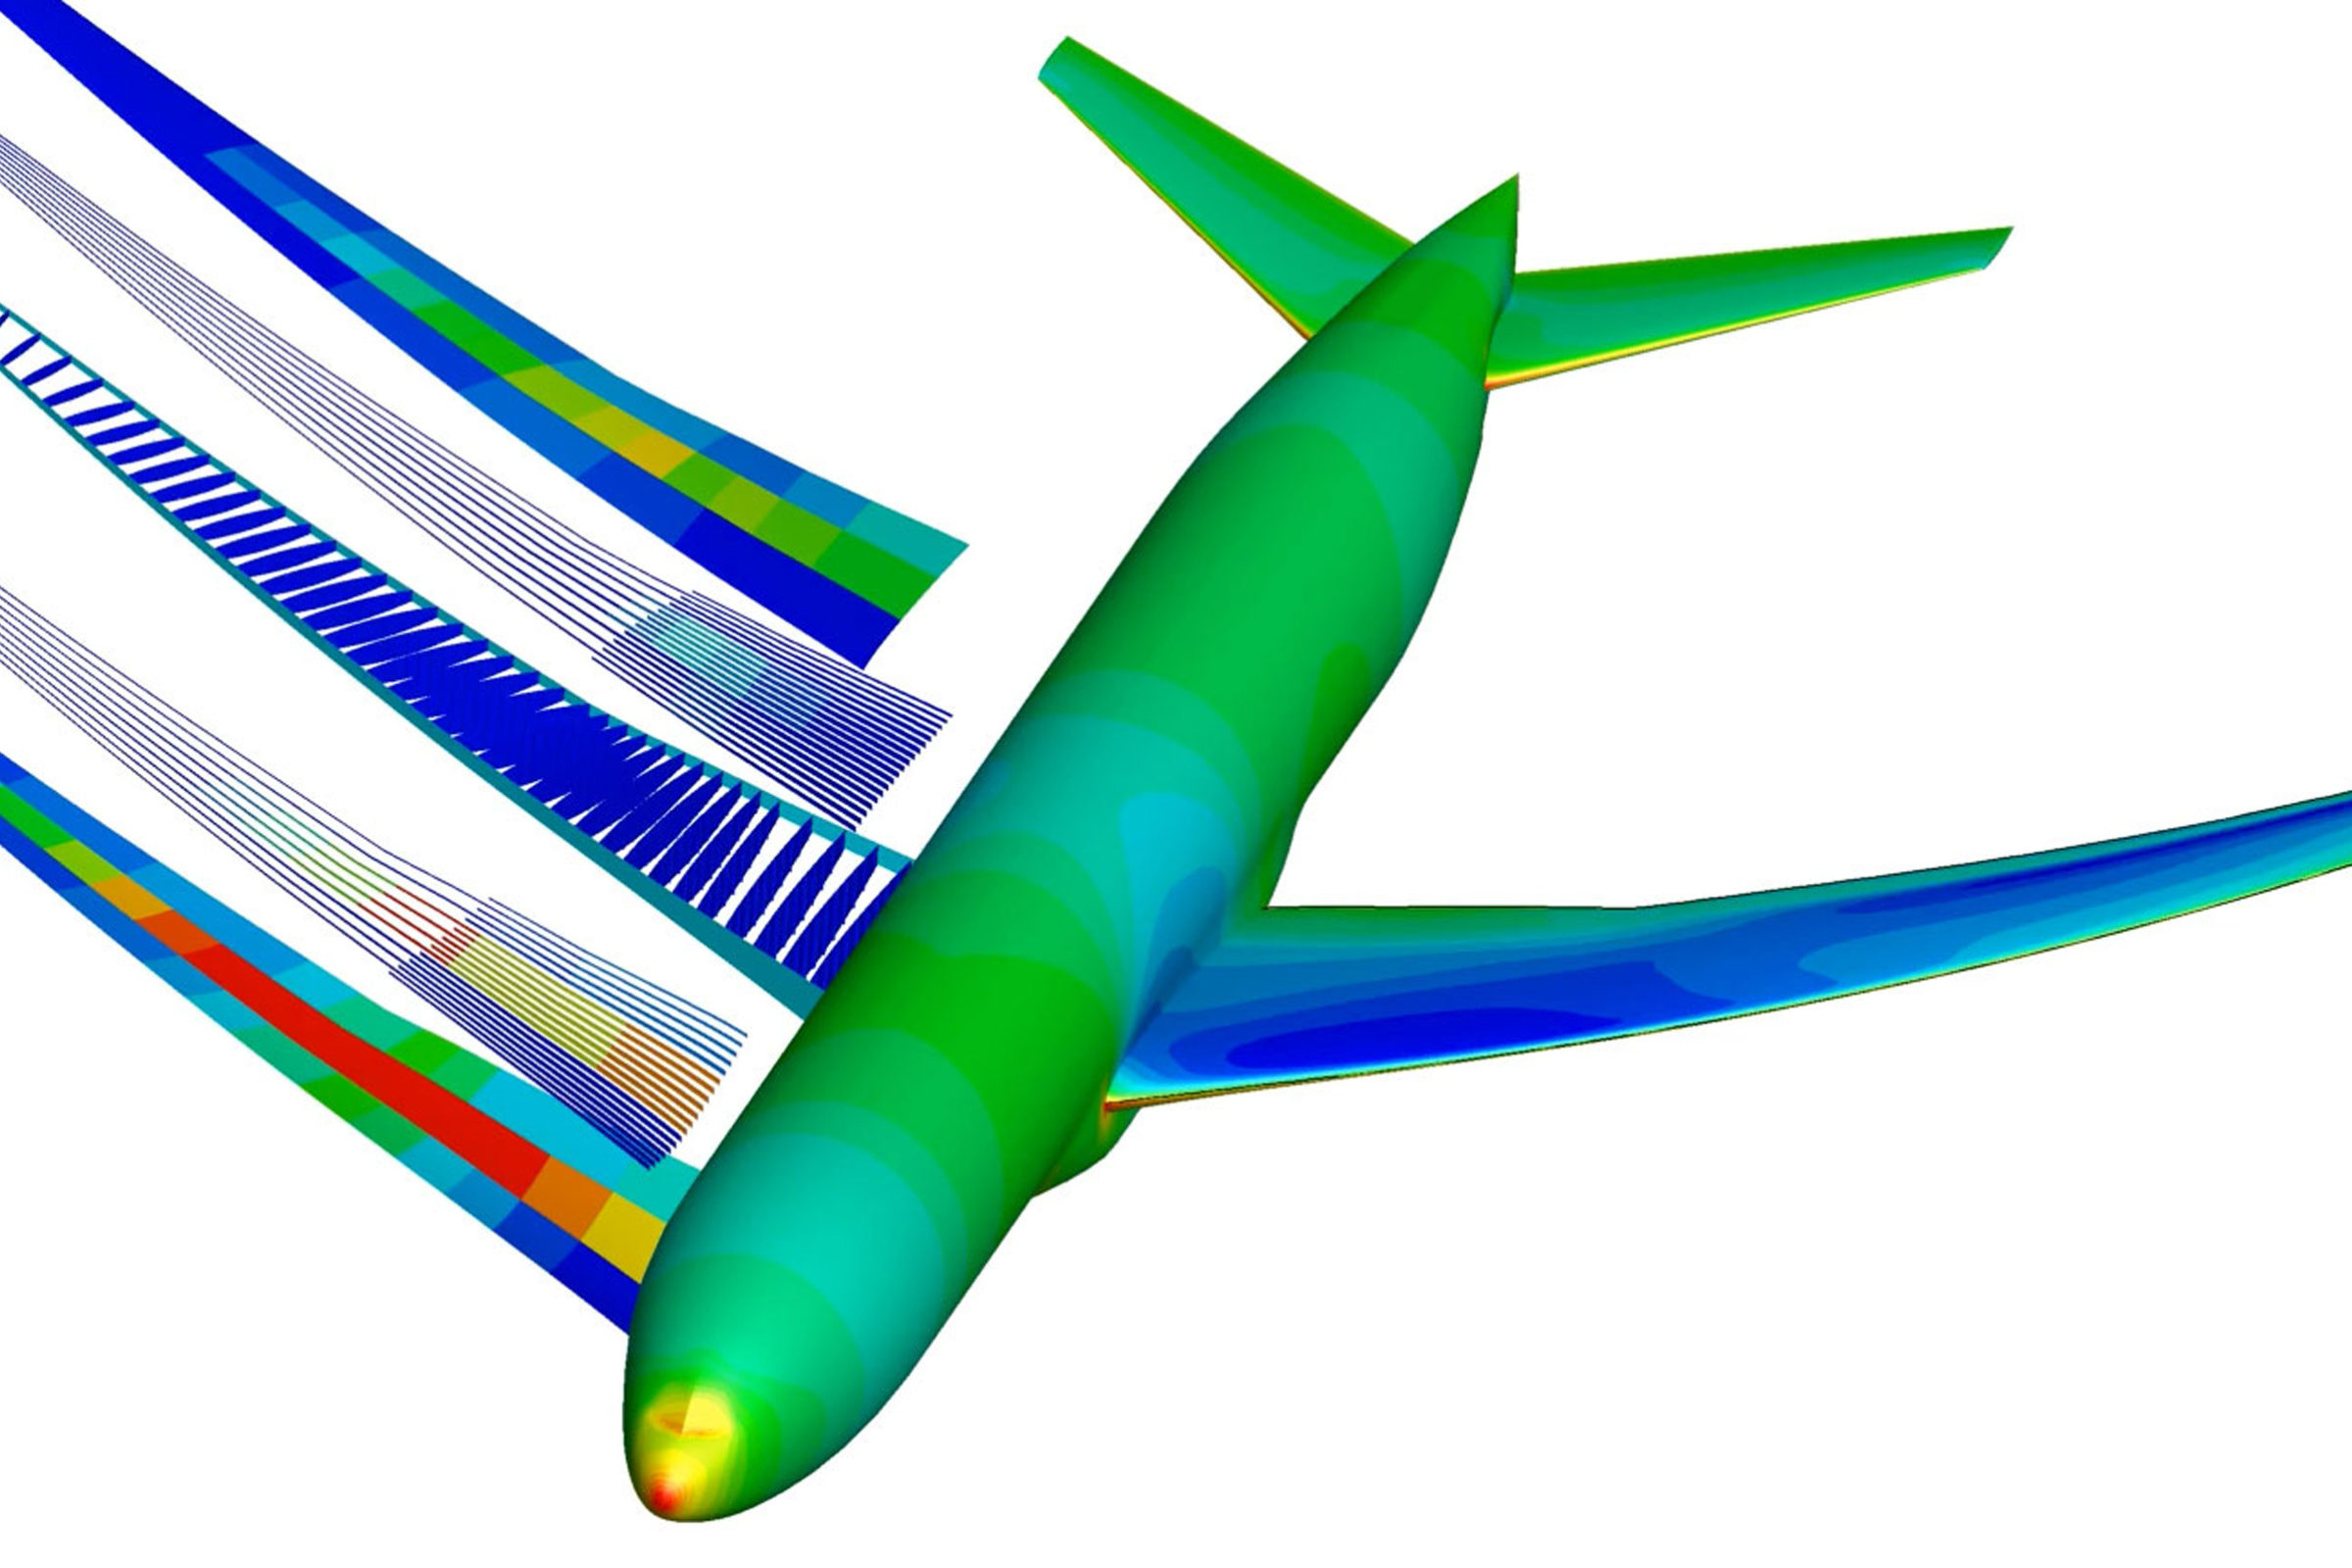 Simulation image of an optimized aircraft.